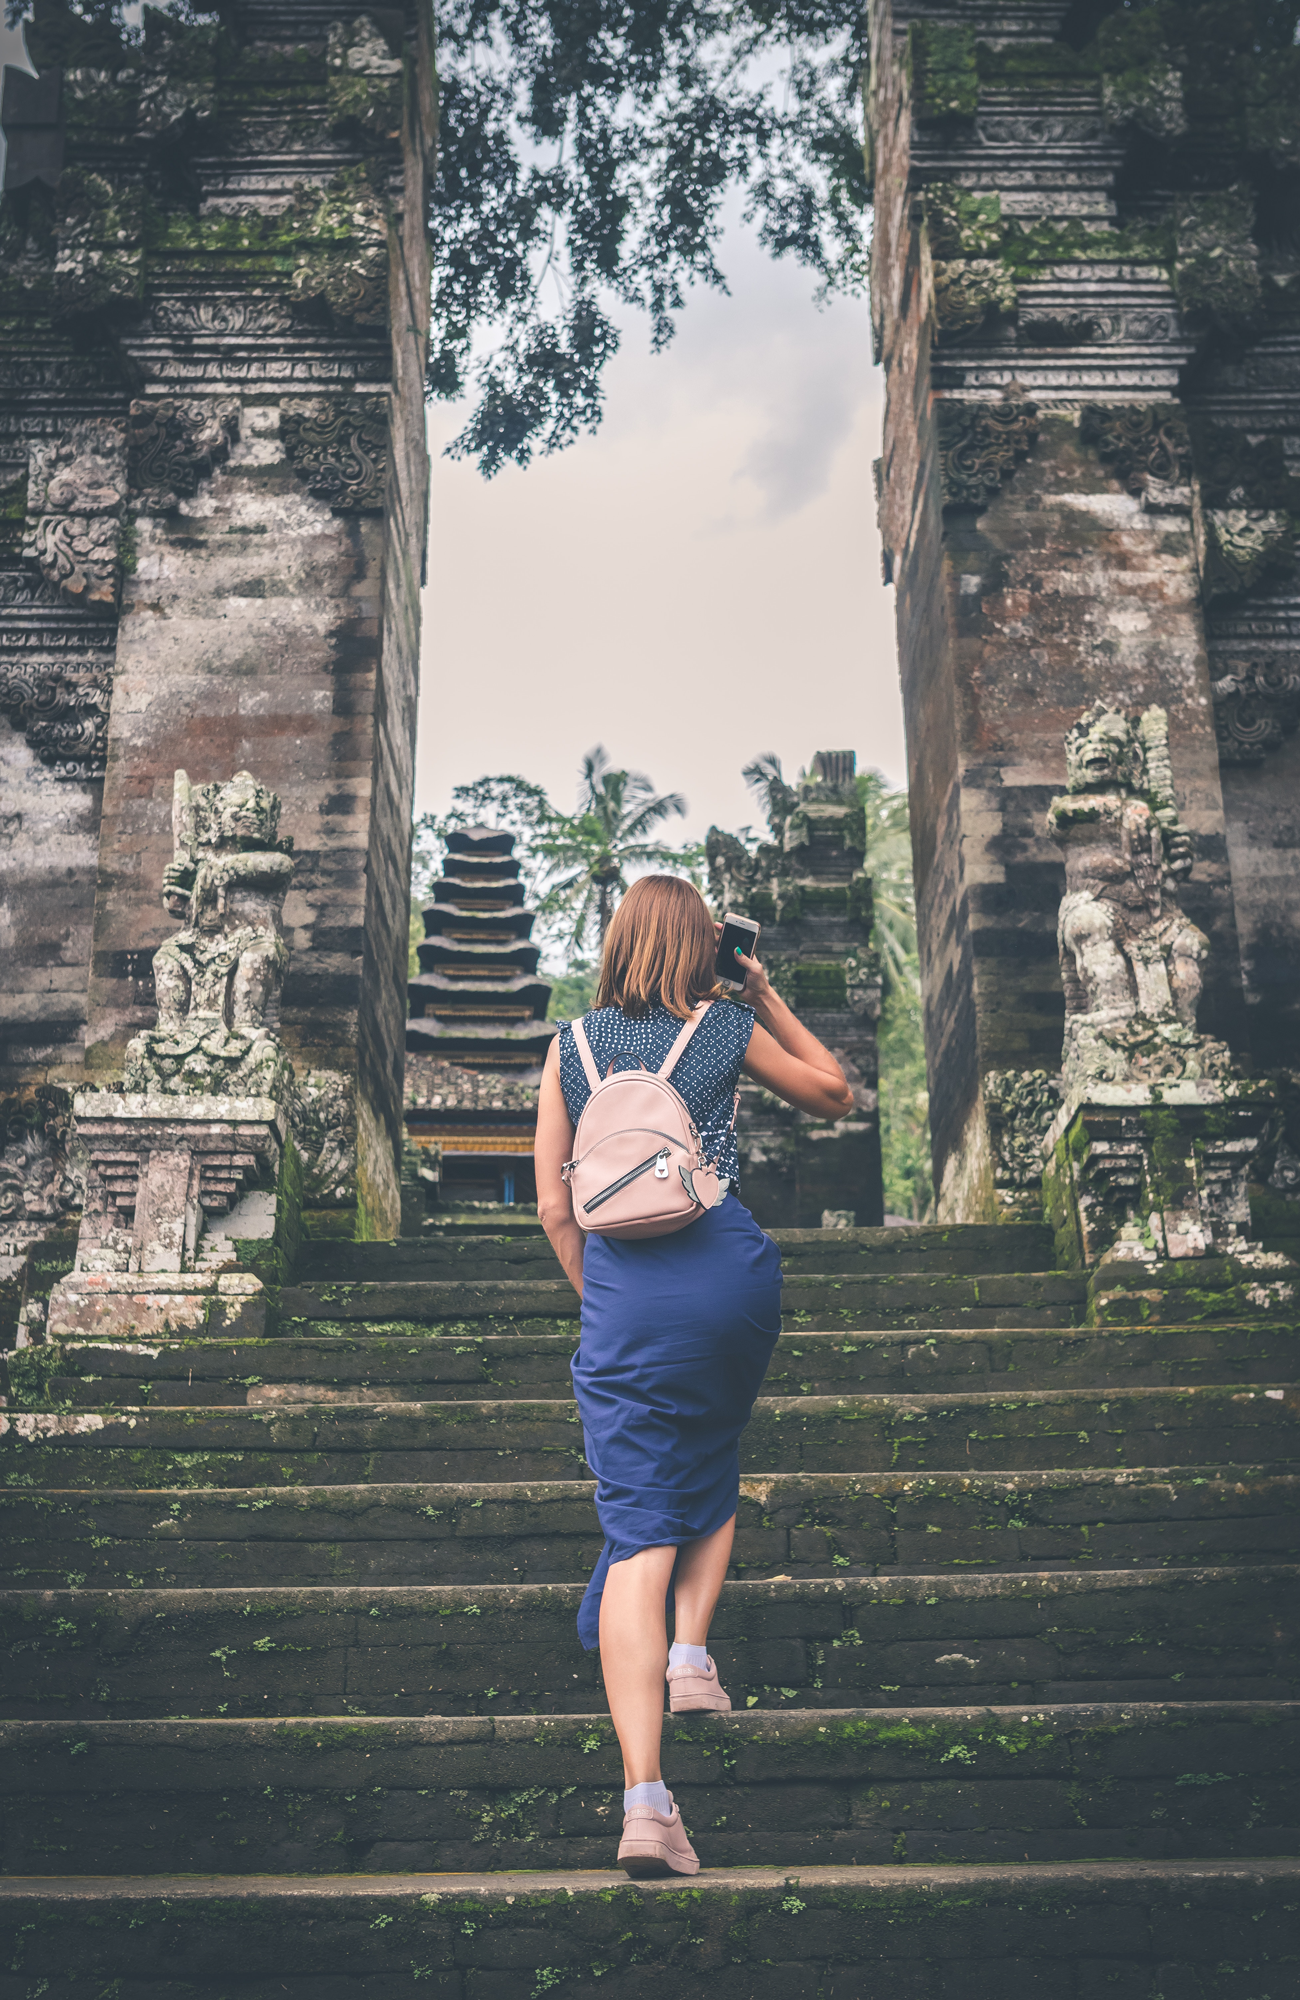 bali-indonesia-girl-walking-stairs-temple-sidebar